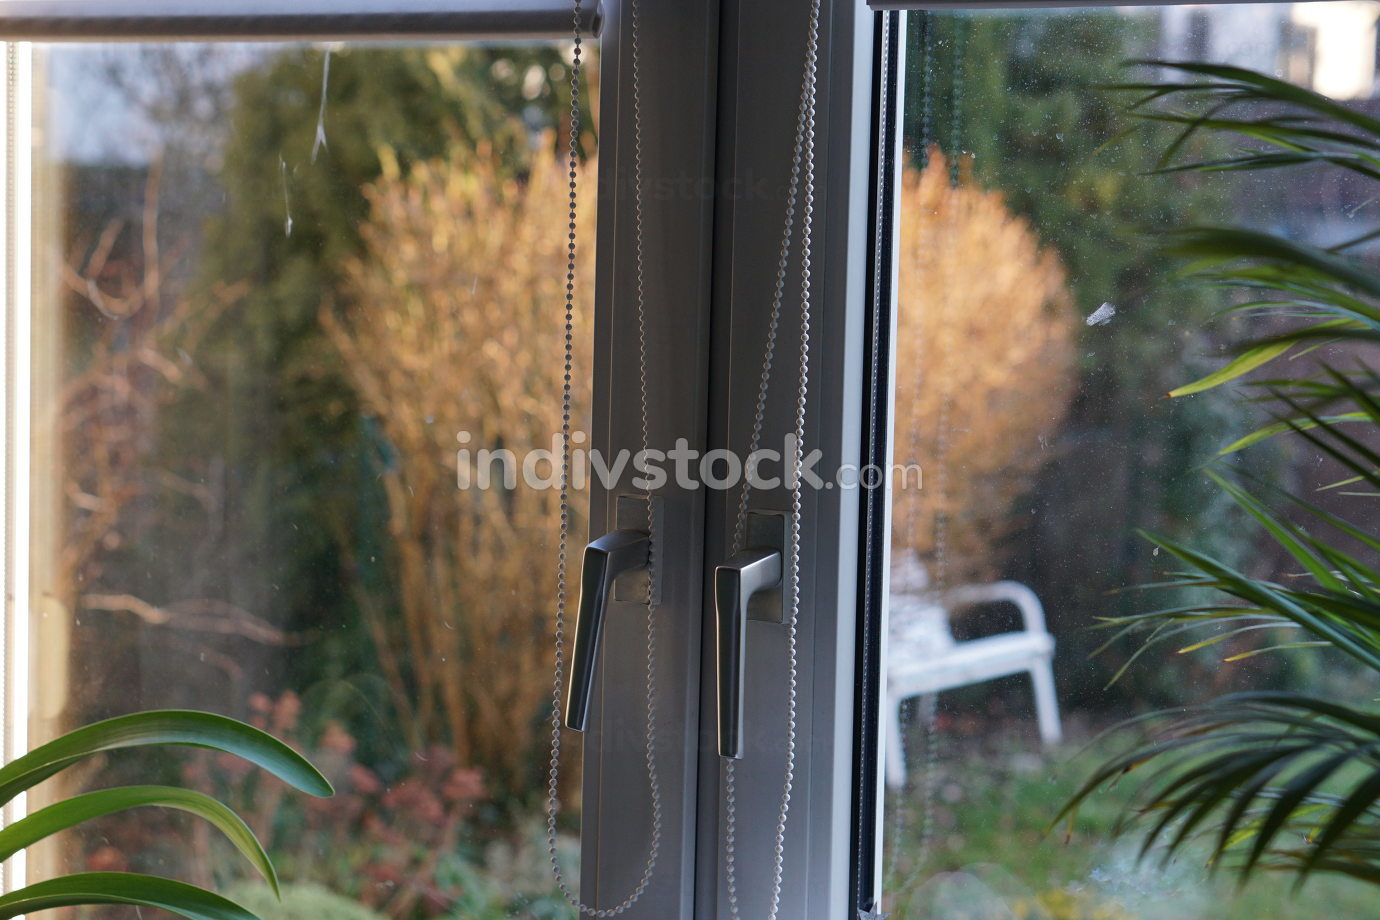 free download: Windows with a view of the garden